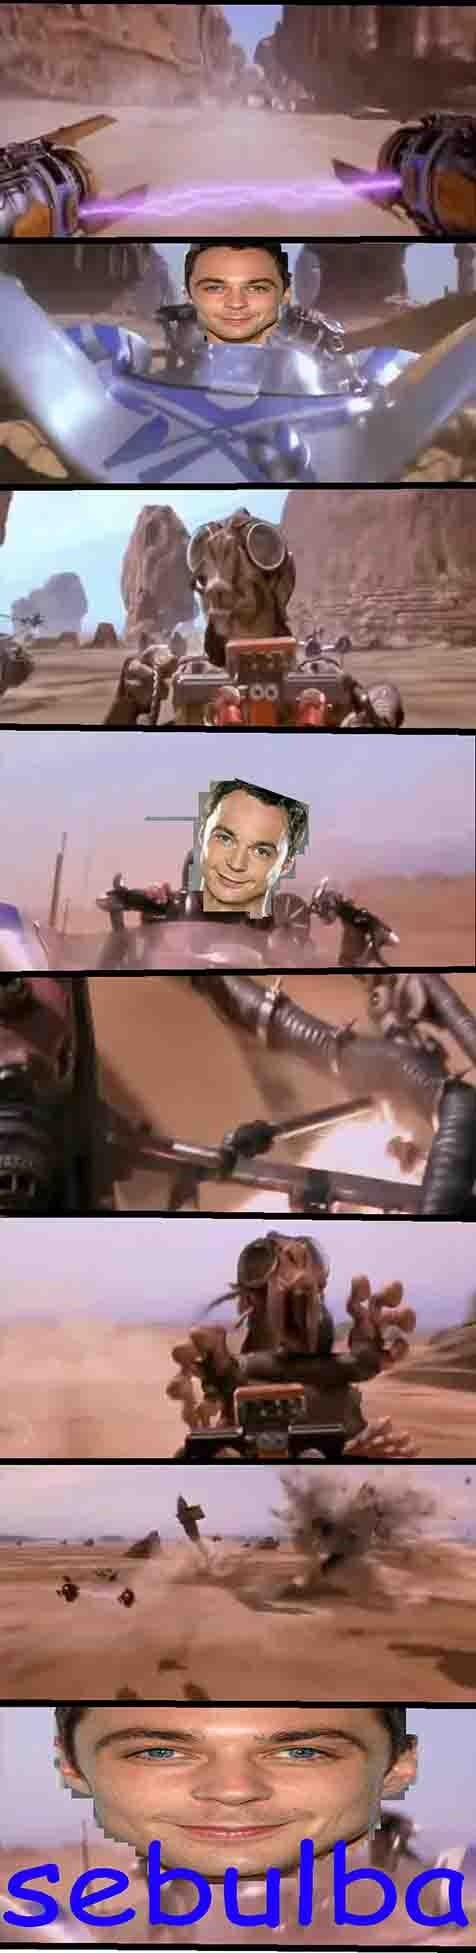 Sheldon Cooper,star wars,the big bang theory,the phantom menace,dolan,jim parsons